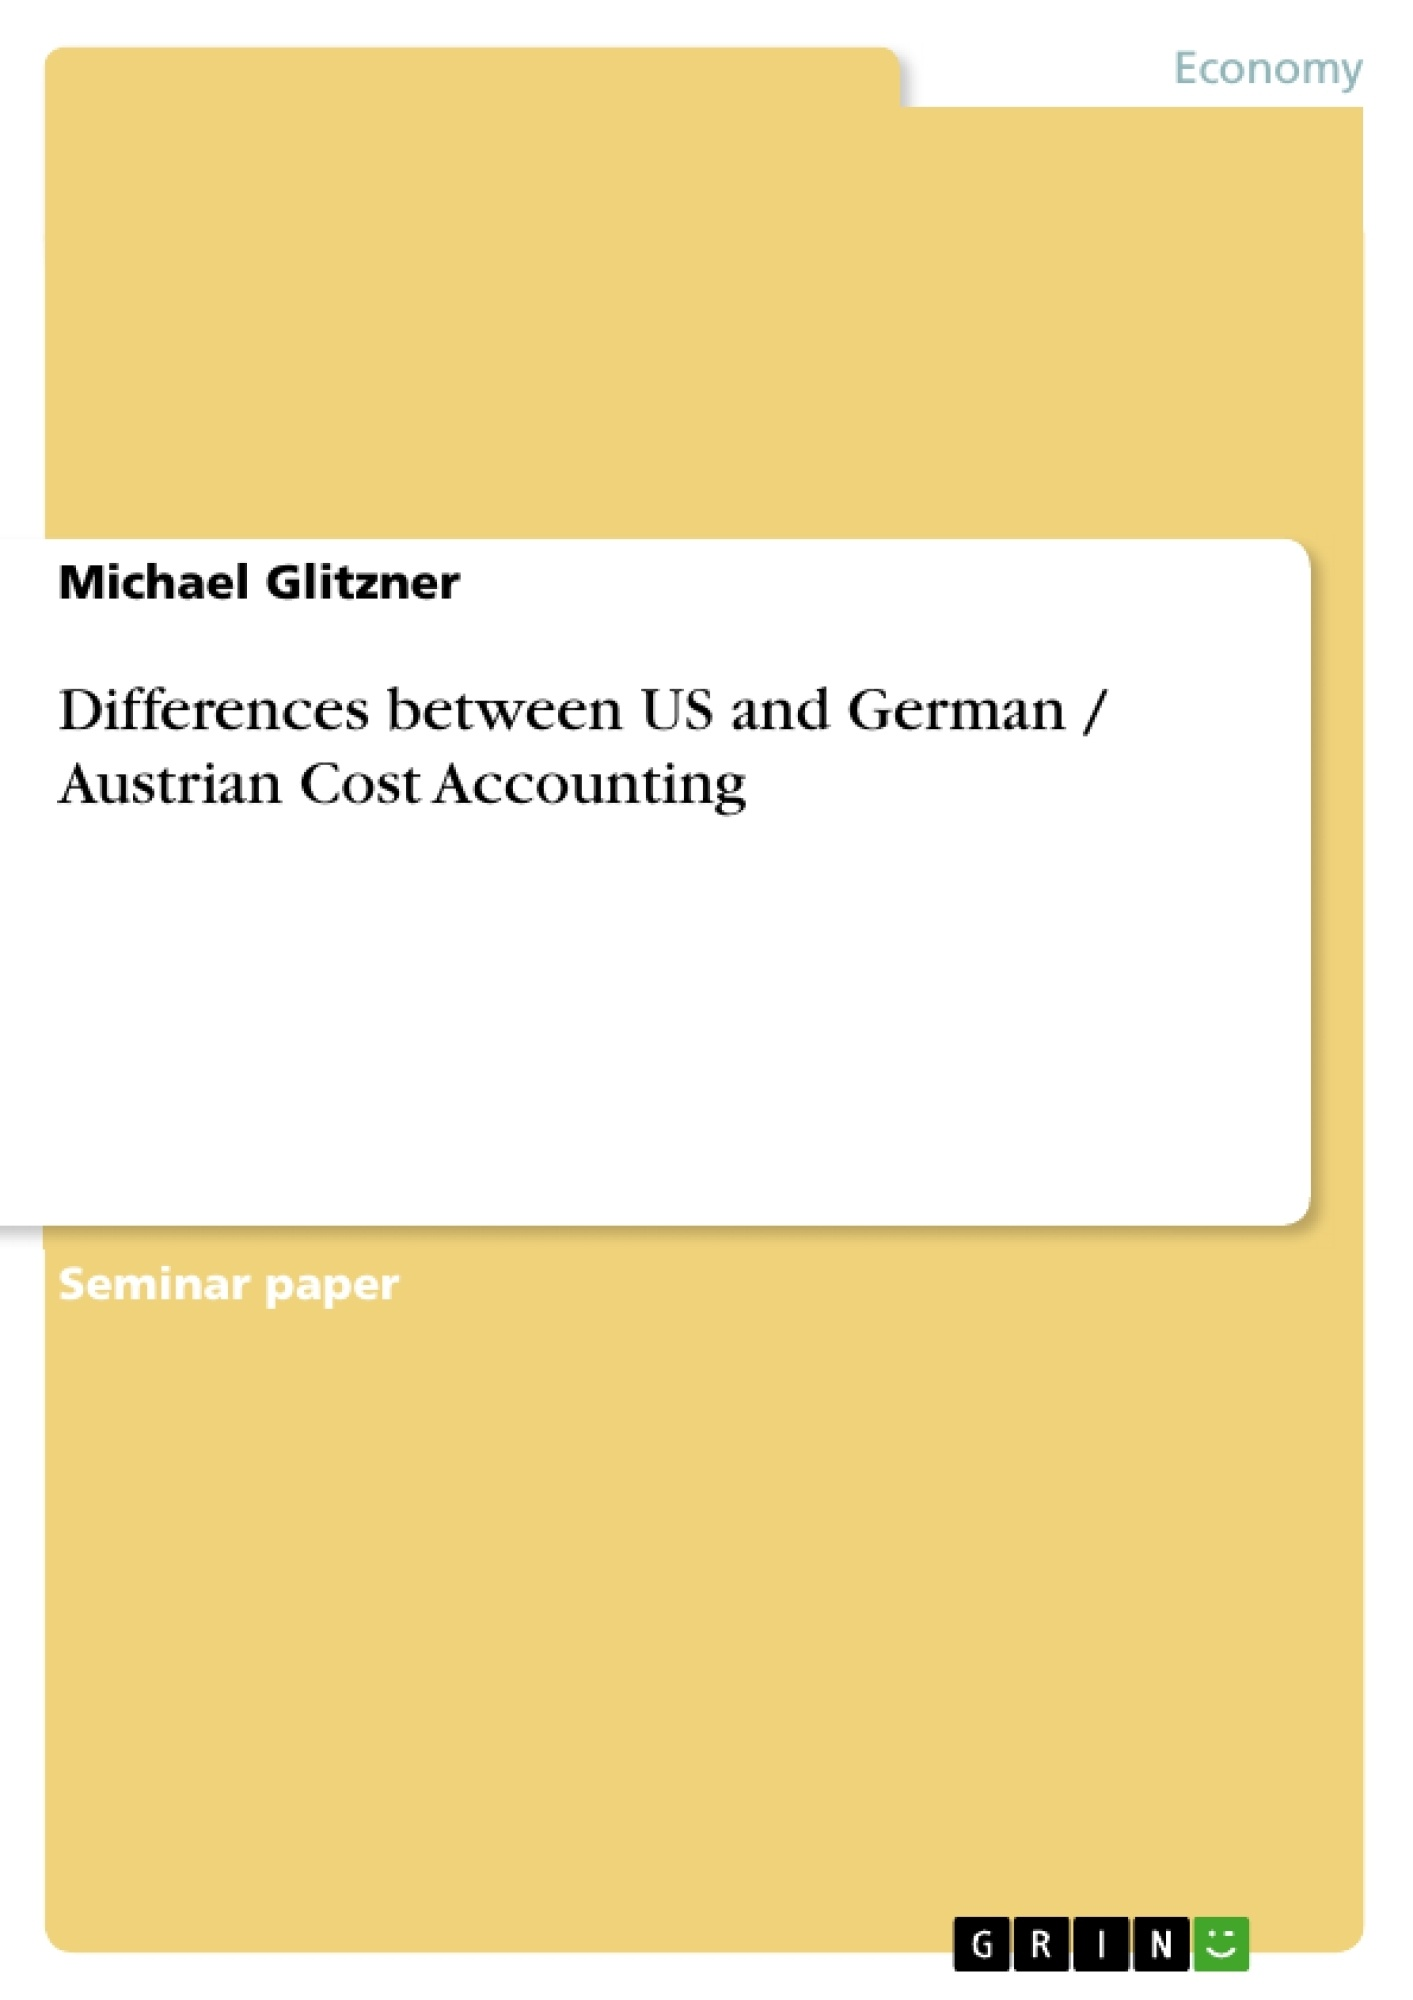 Title: Differences between US and German / Austrian Cost Accounting